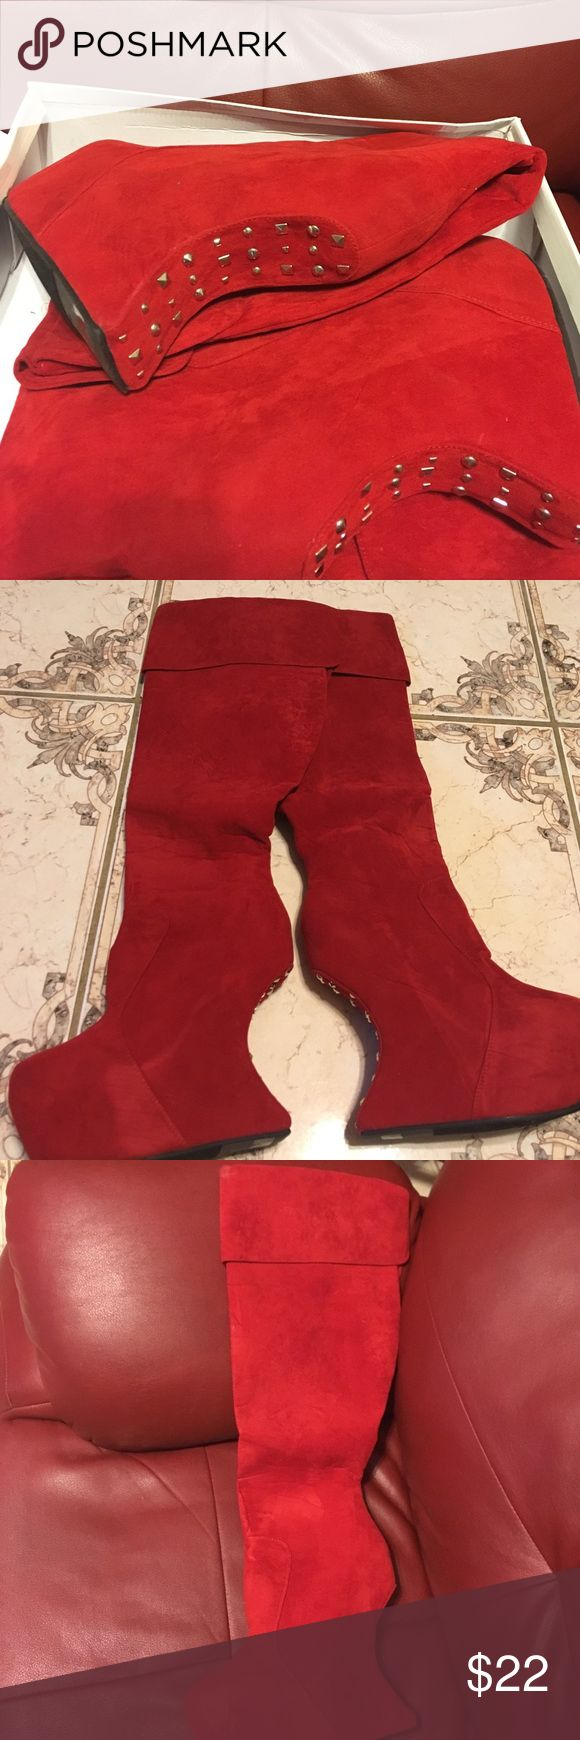 Vintage red suede knee high wedge boots. New Never worn. Size 11 women's. Pretty red suede with silver designs on the heel. Perfect for a sexy night out or photo shoot! Vintage Shoes Over the Knee Boots